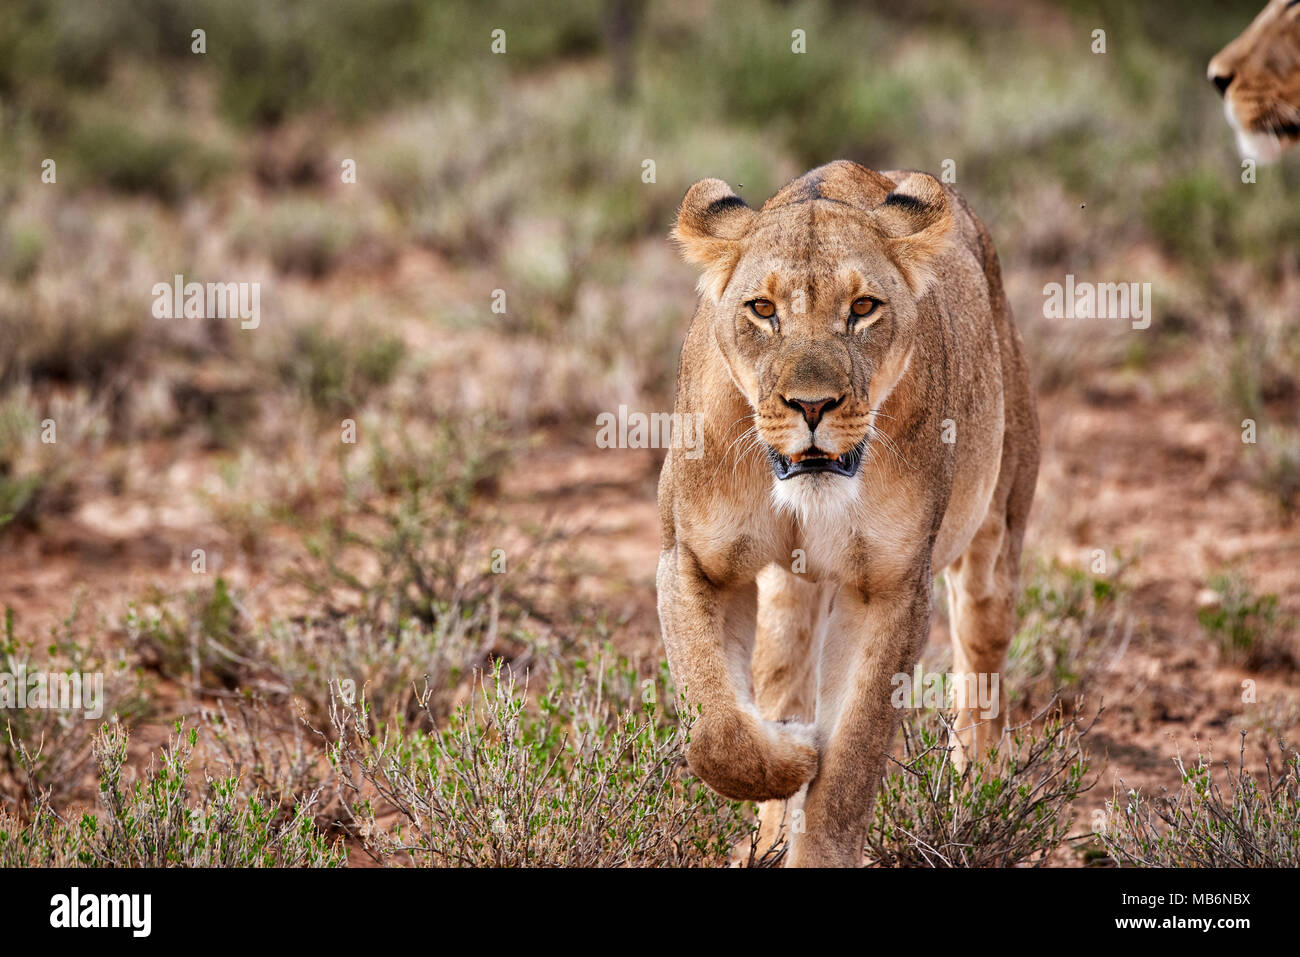 lioness, Panthera leo, roaming through landscape of the Kalahari,, Kgalagadi Transfrontier Park, South Africa, Africa - Stock Image